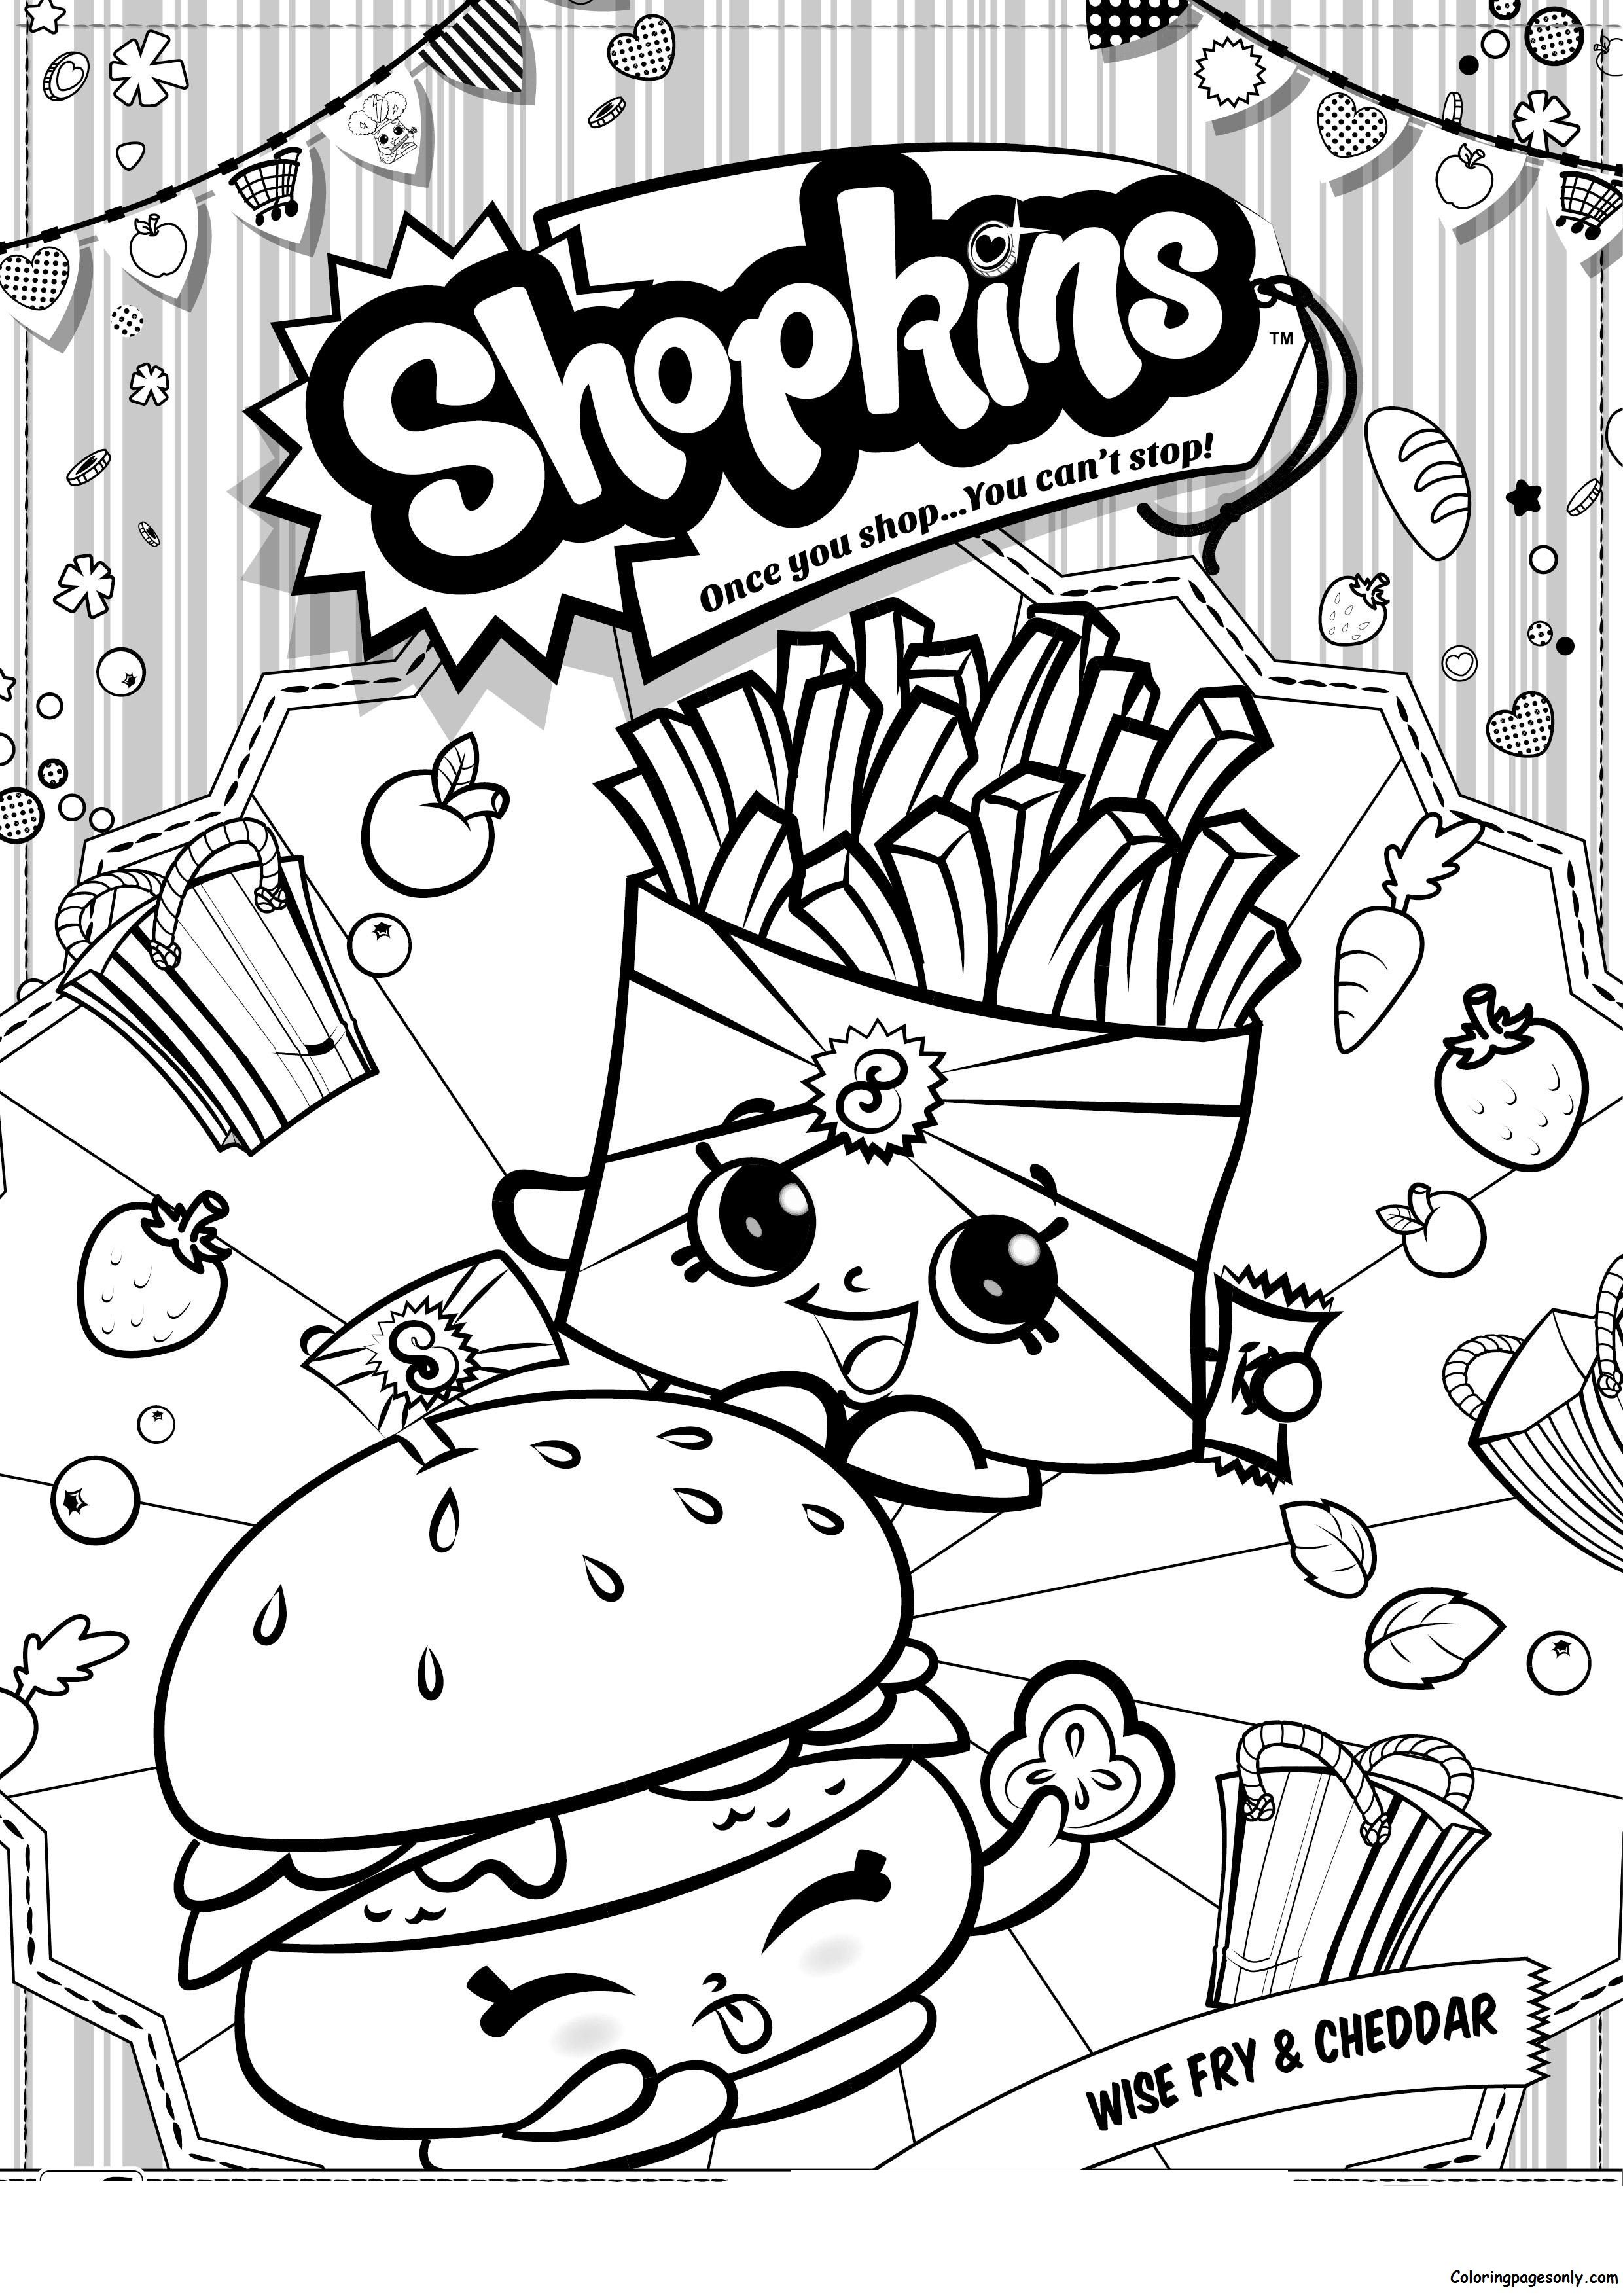 Wise Fry And Cheddar Shopkins Coloring Page - Free Coloring Pages Online